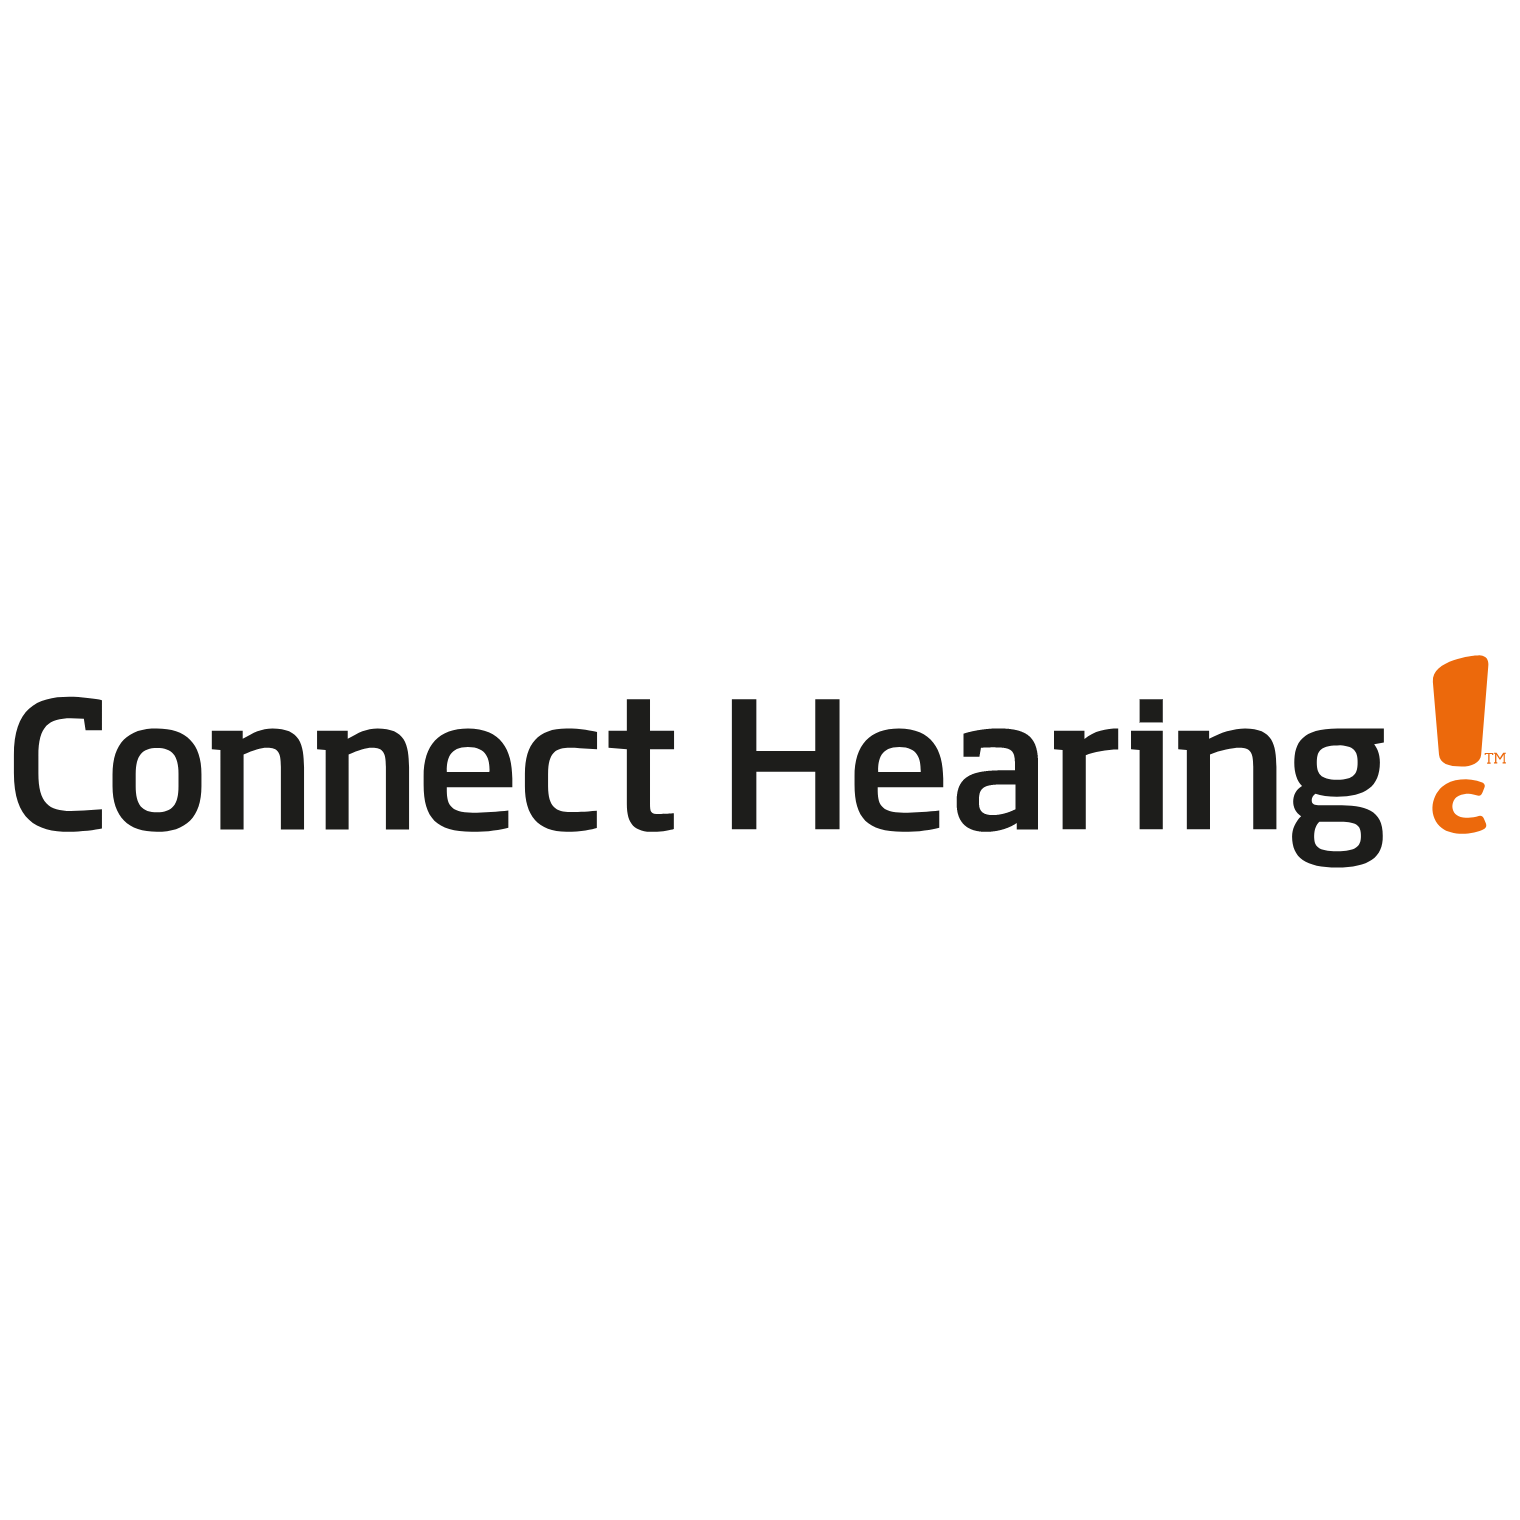 Connect Hearing - Adelaide, SA 5000 - (08) 8213 5610 | ShowMeLocal.com